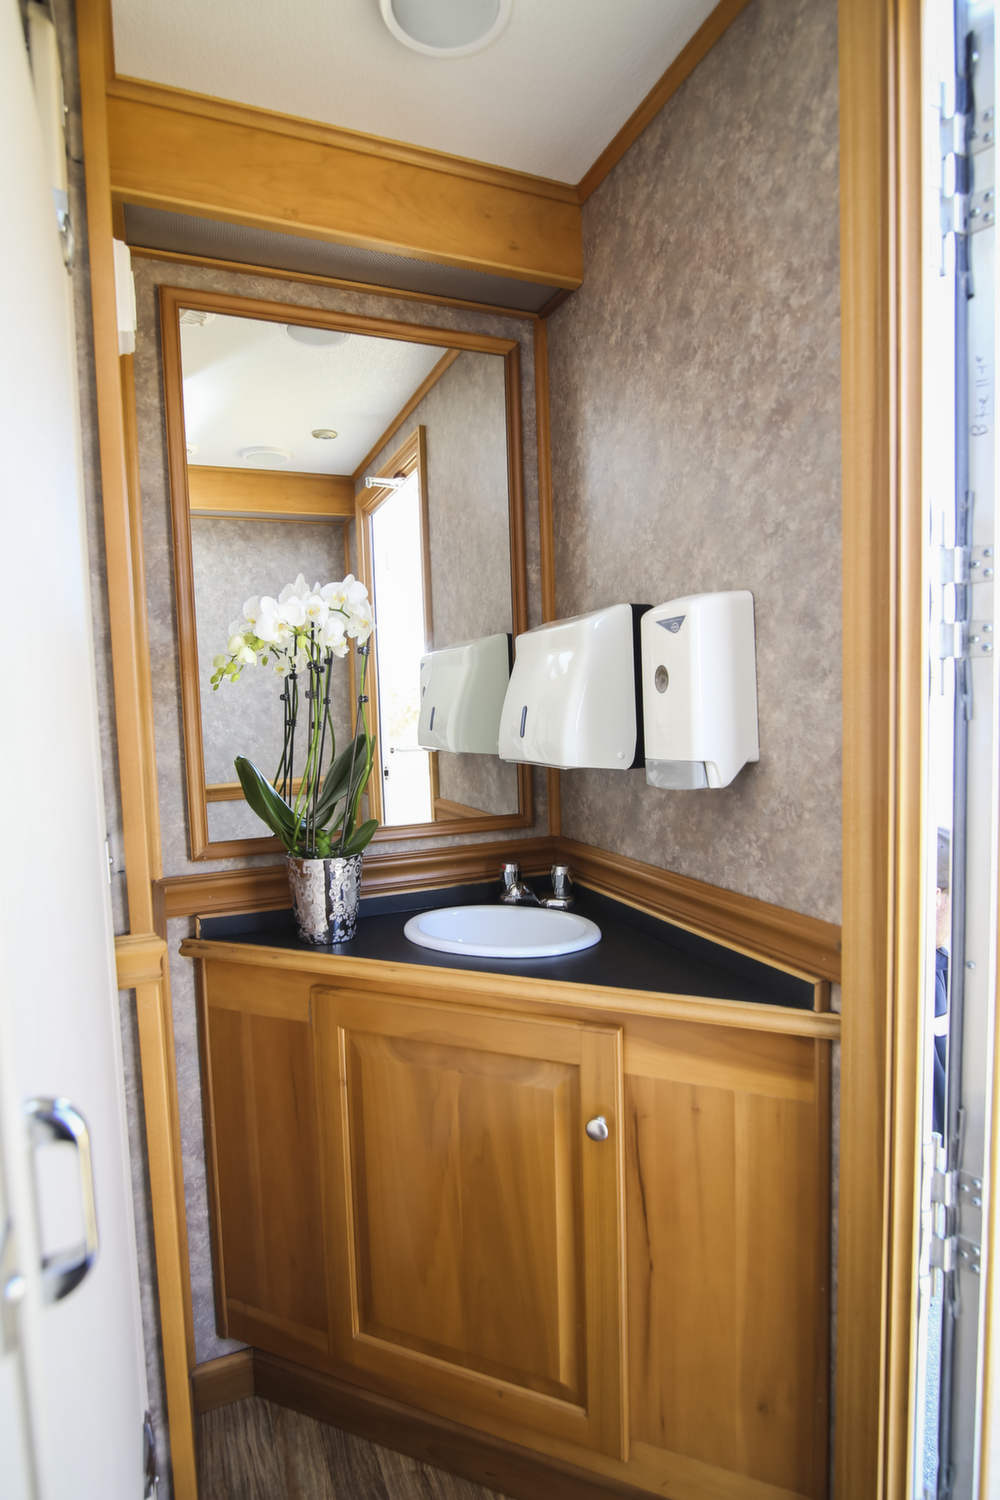 Presidential Portable Restroom Trailer